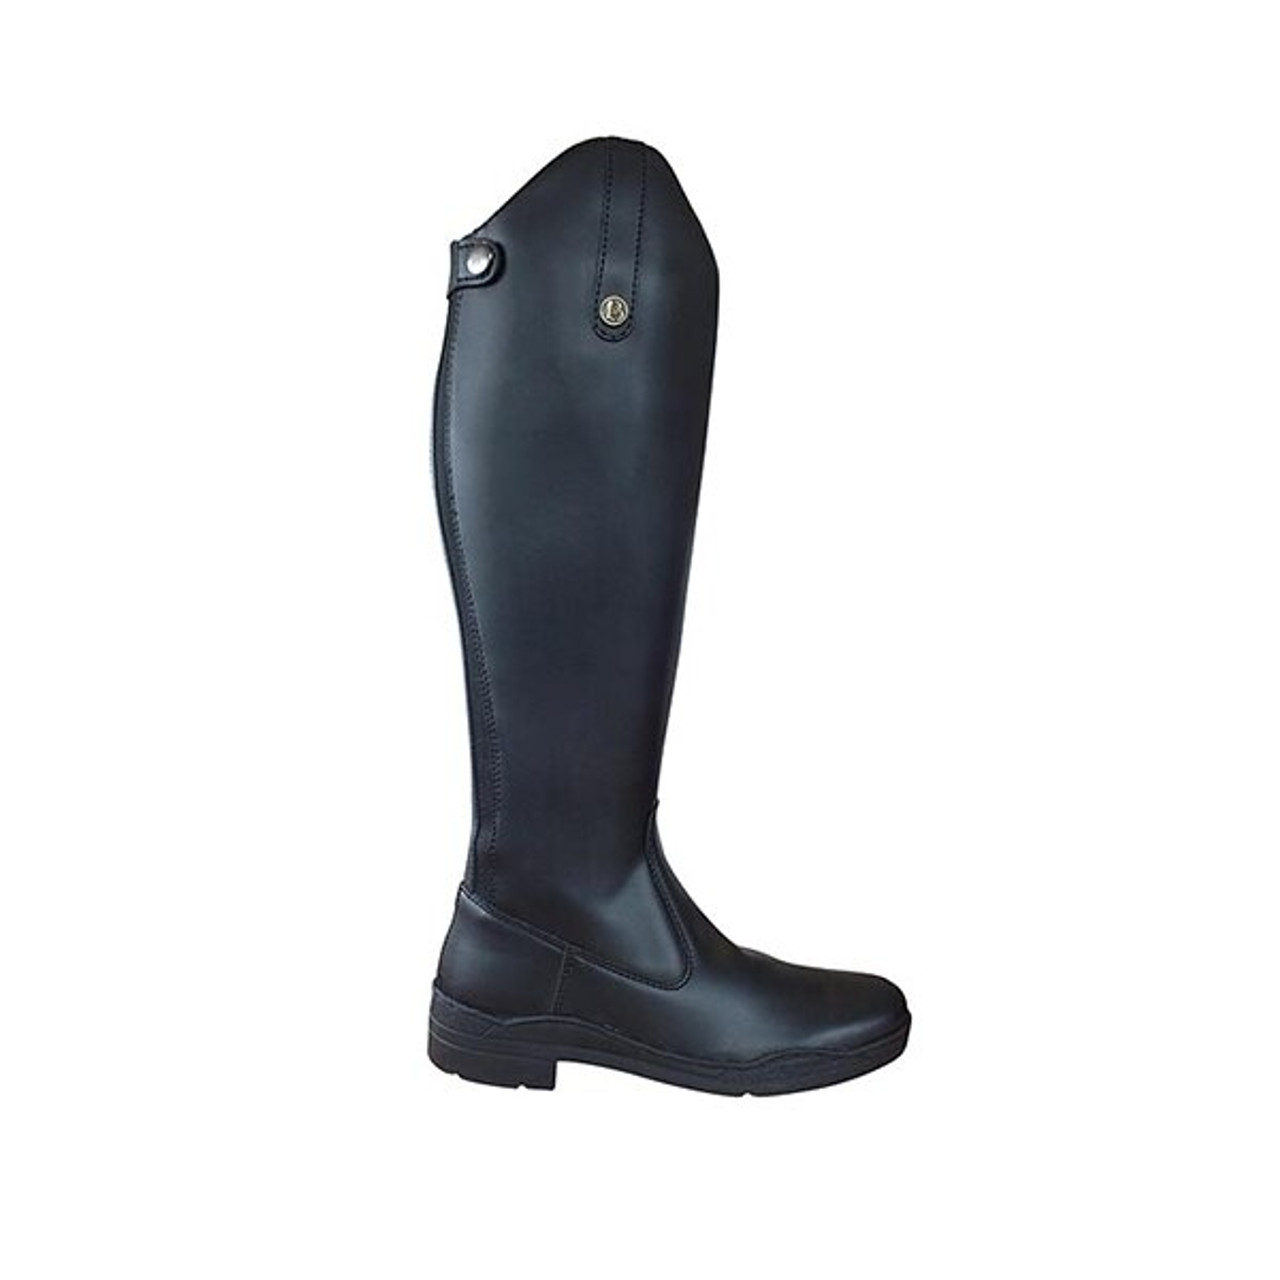 f96f08a6b0f Brogini Modena Long Riding Boots - Extra Wide Fit - HOOVES AND BOONIES